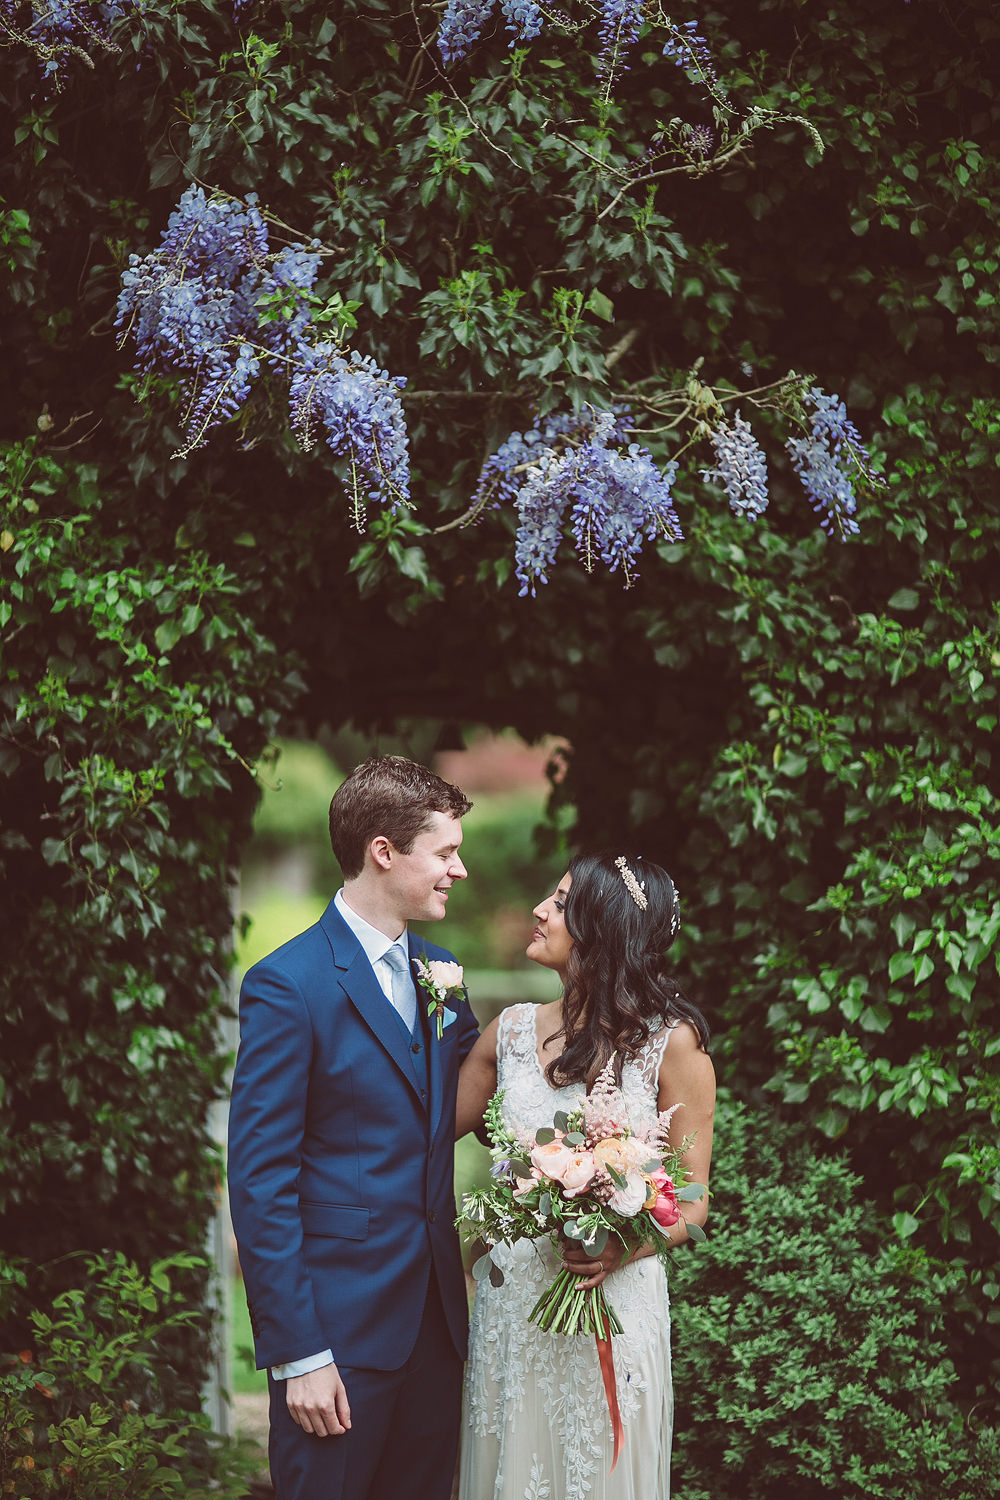 English/Indian Fusion Wedding at Northbrook Park with Coral Flowers